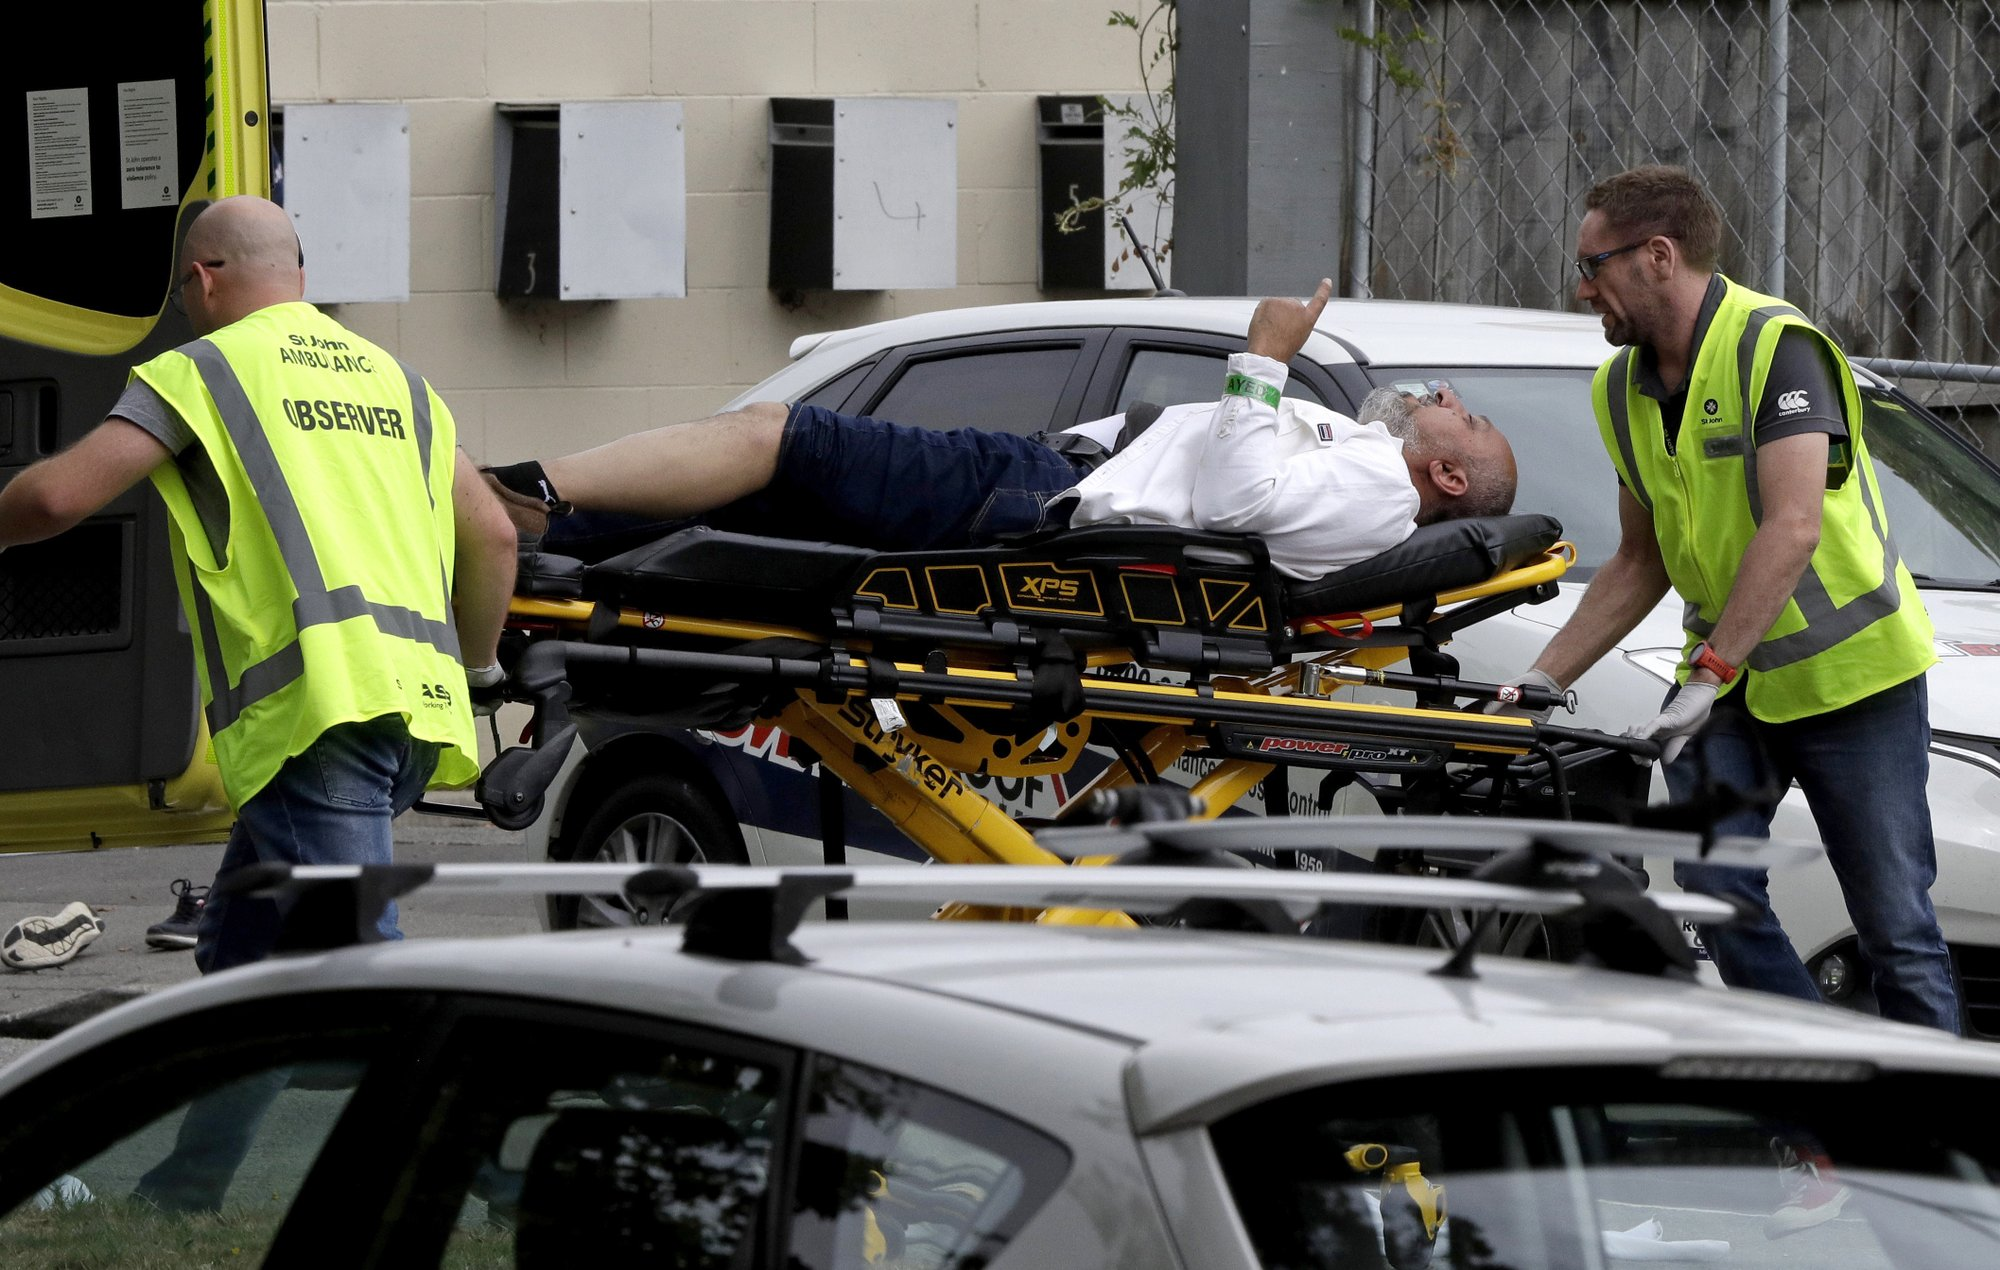 New Zeland Mosque Attack